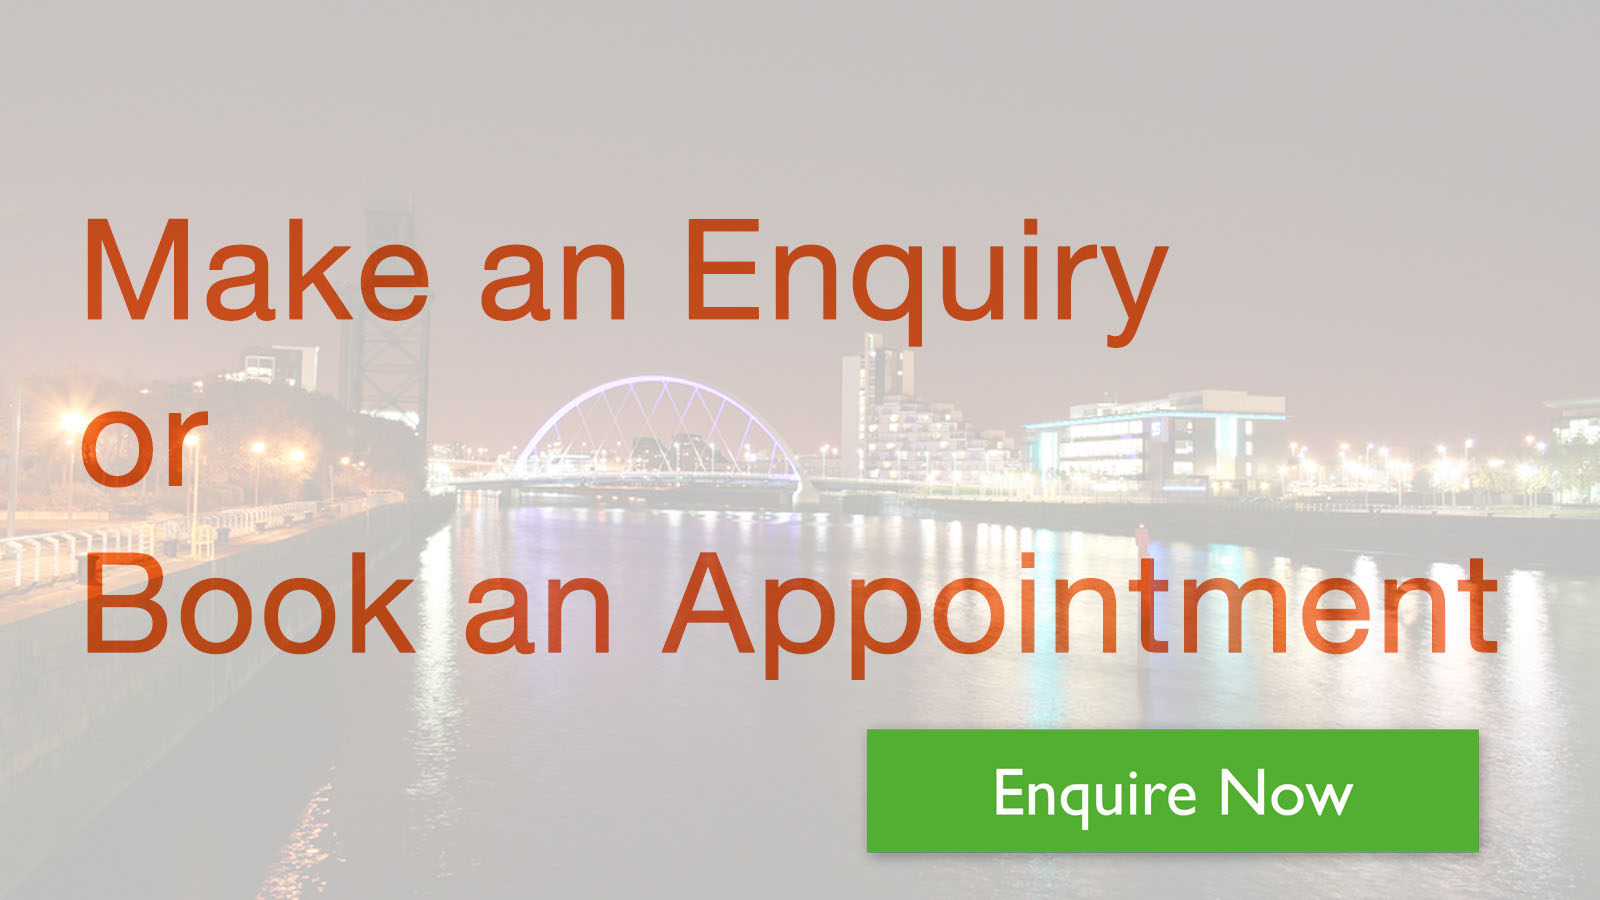 Make Enquiry or Book Appointment